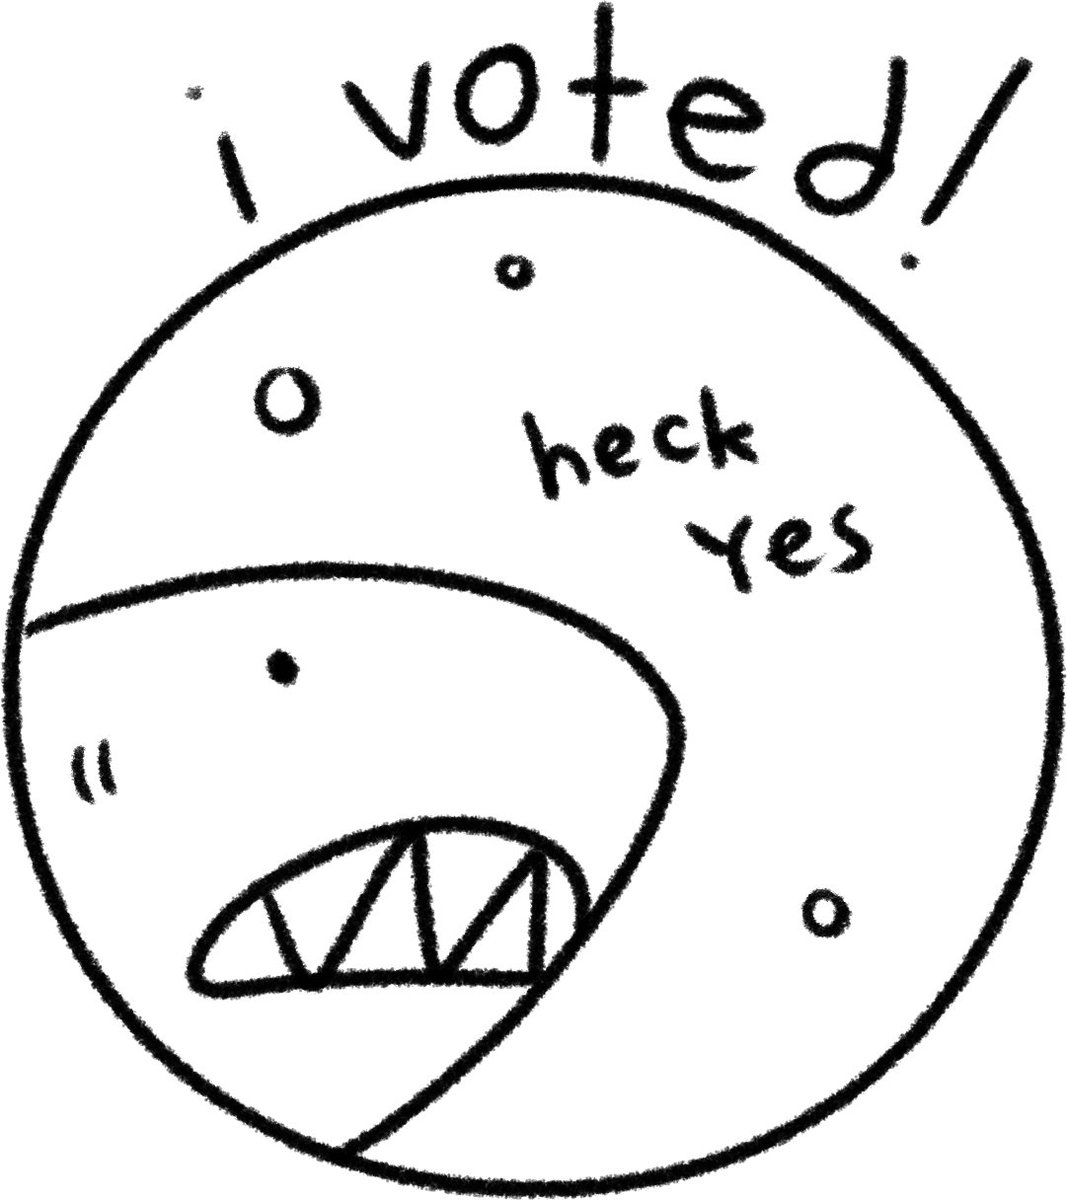 1067x1200 gale galligan on twitter boo! boo!! here's a voter